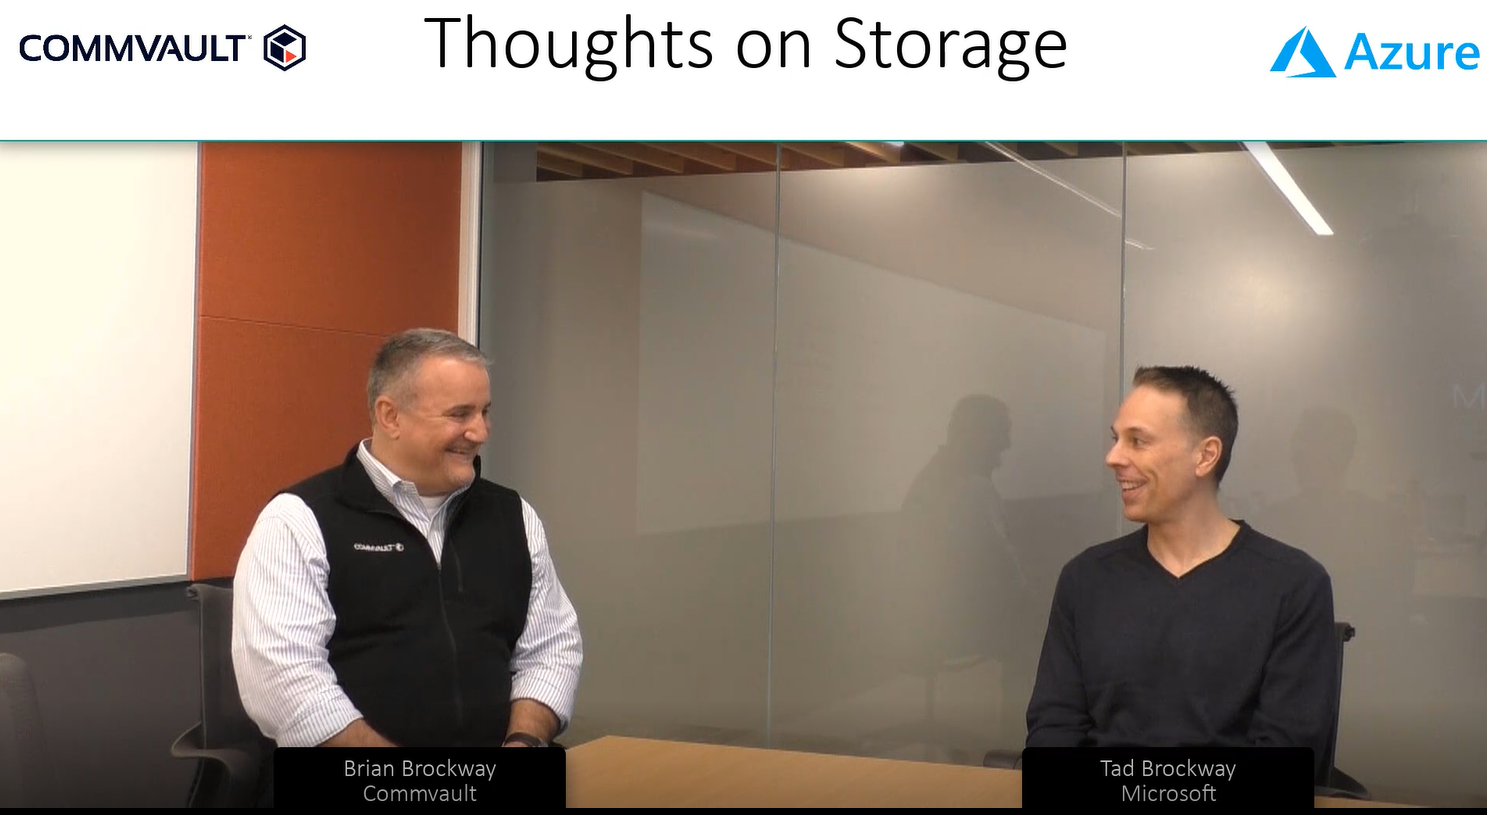 Thoughts on Storage with Commvault